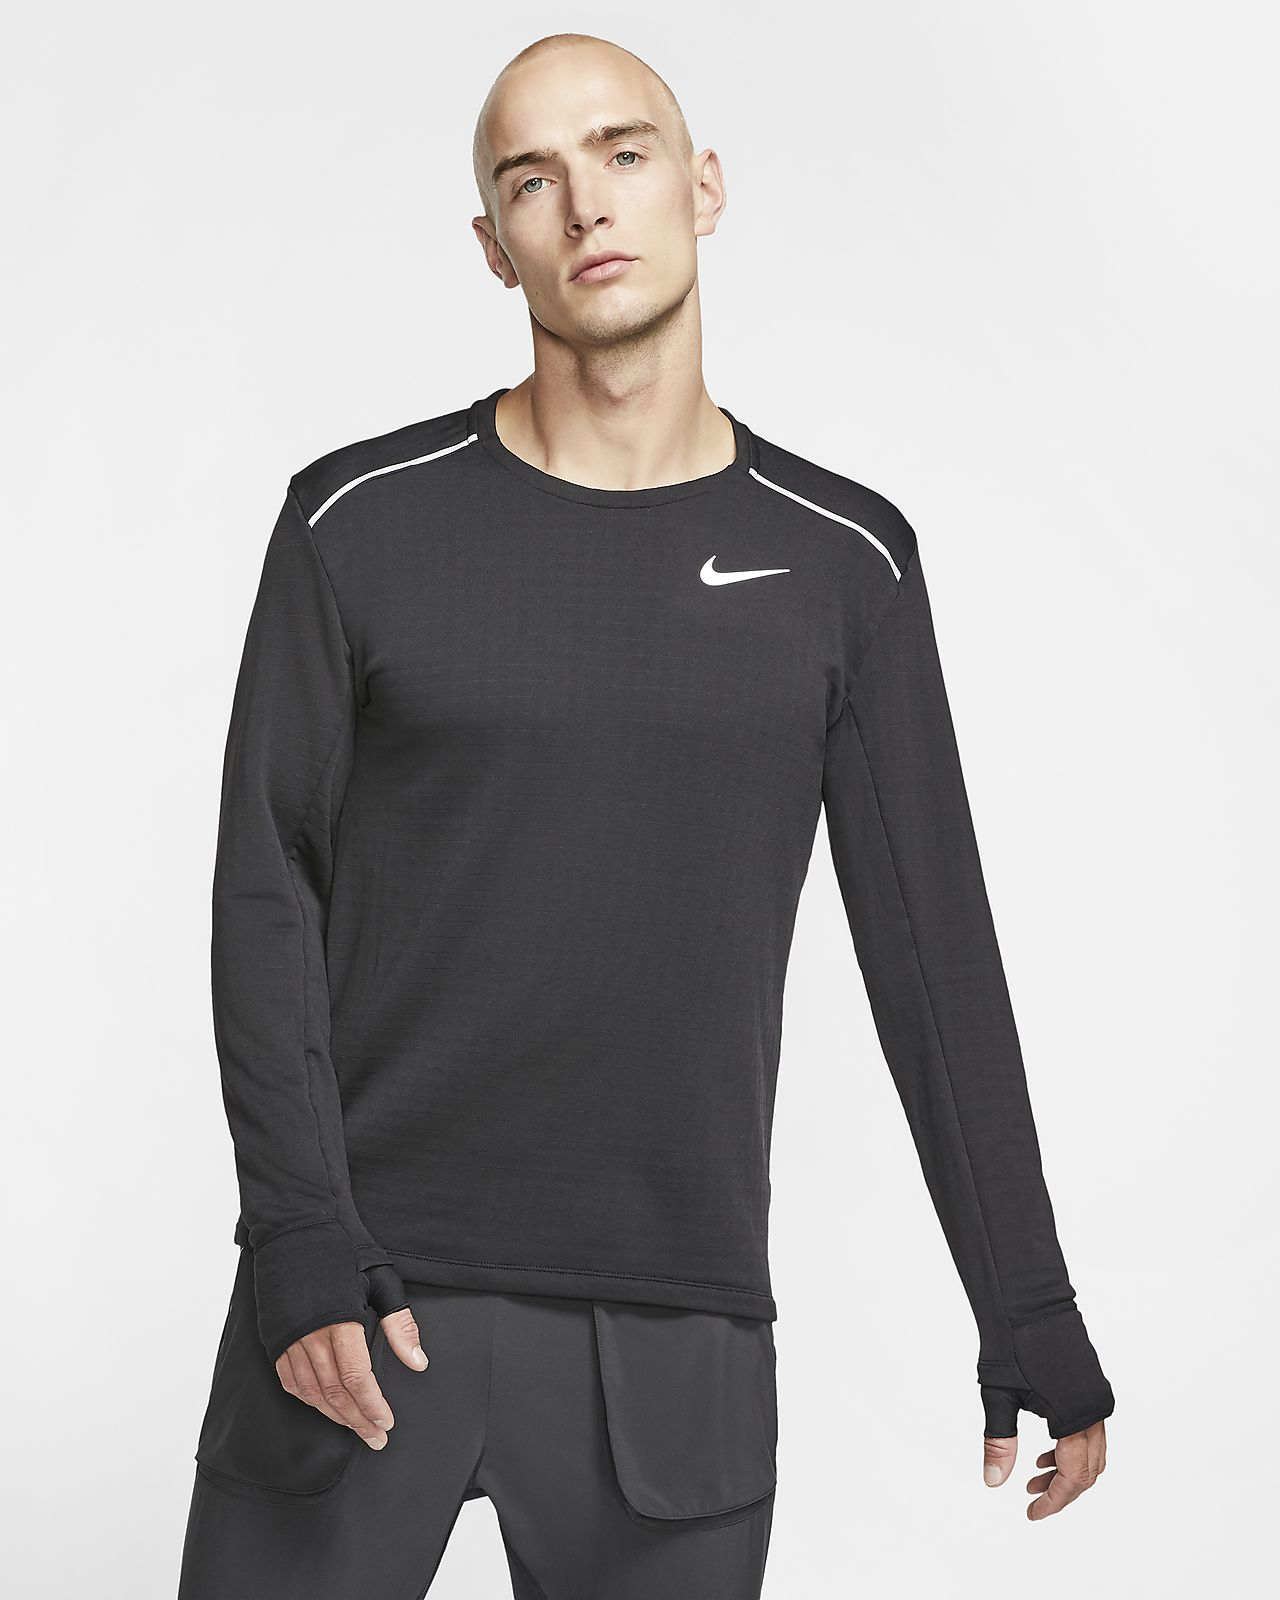 Colibrí plátano firma  Nike Therma Sphere Element 3.0 Men's Long-Sleeved Running Top ...